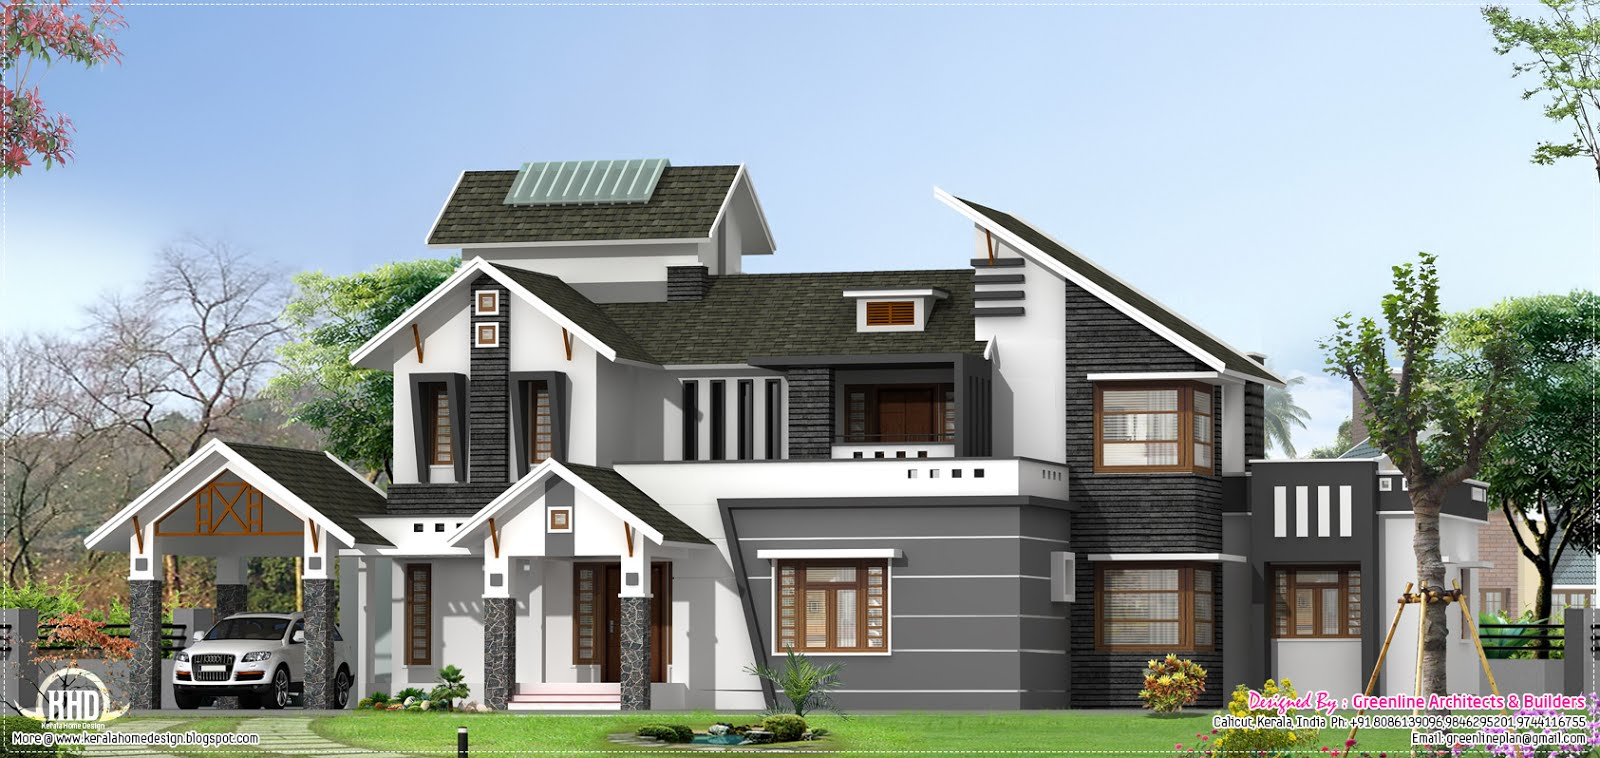 Modern 5 bedroom home design kerala home design and for 5 bedroom new build homes